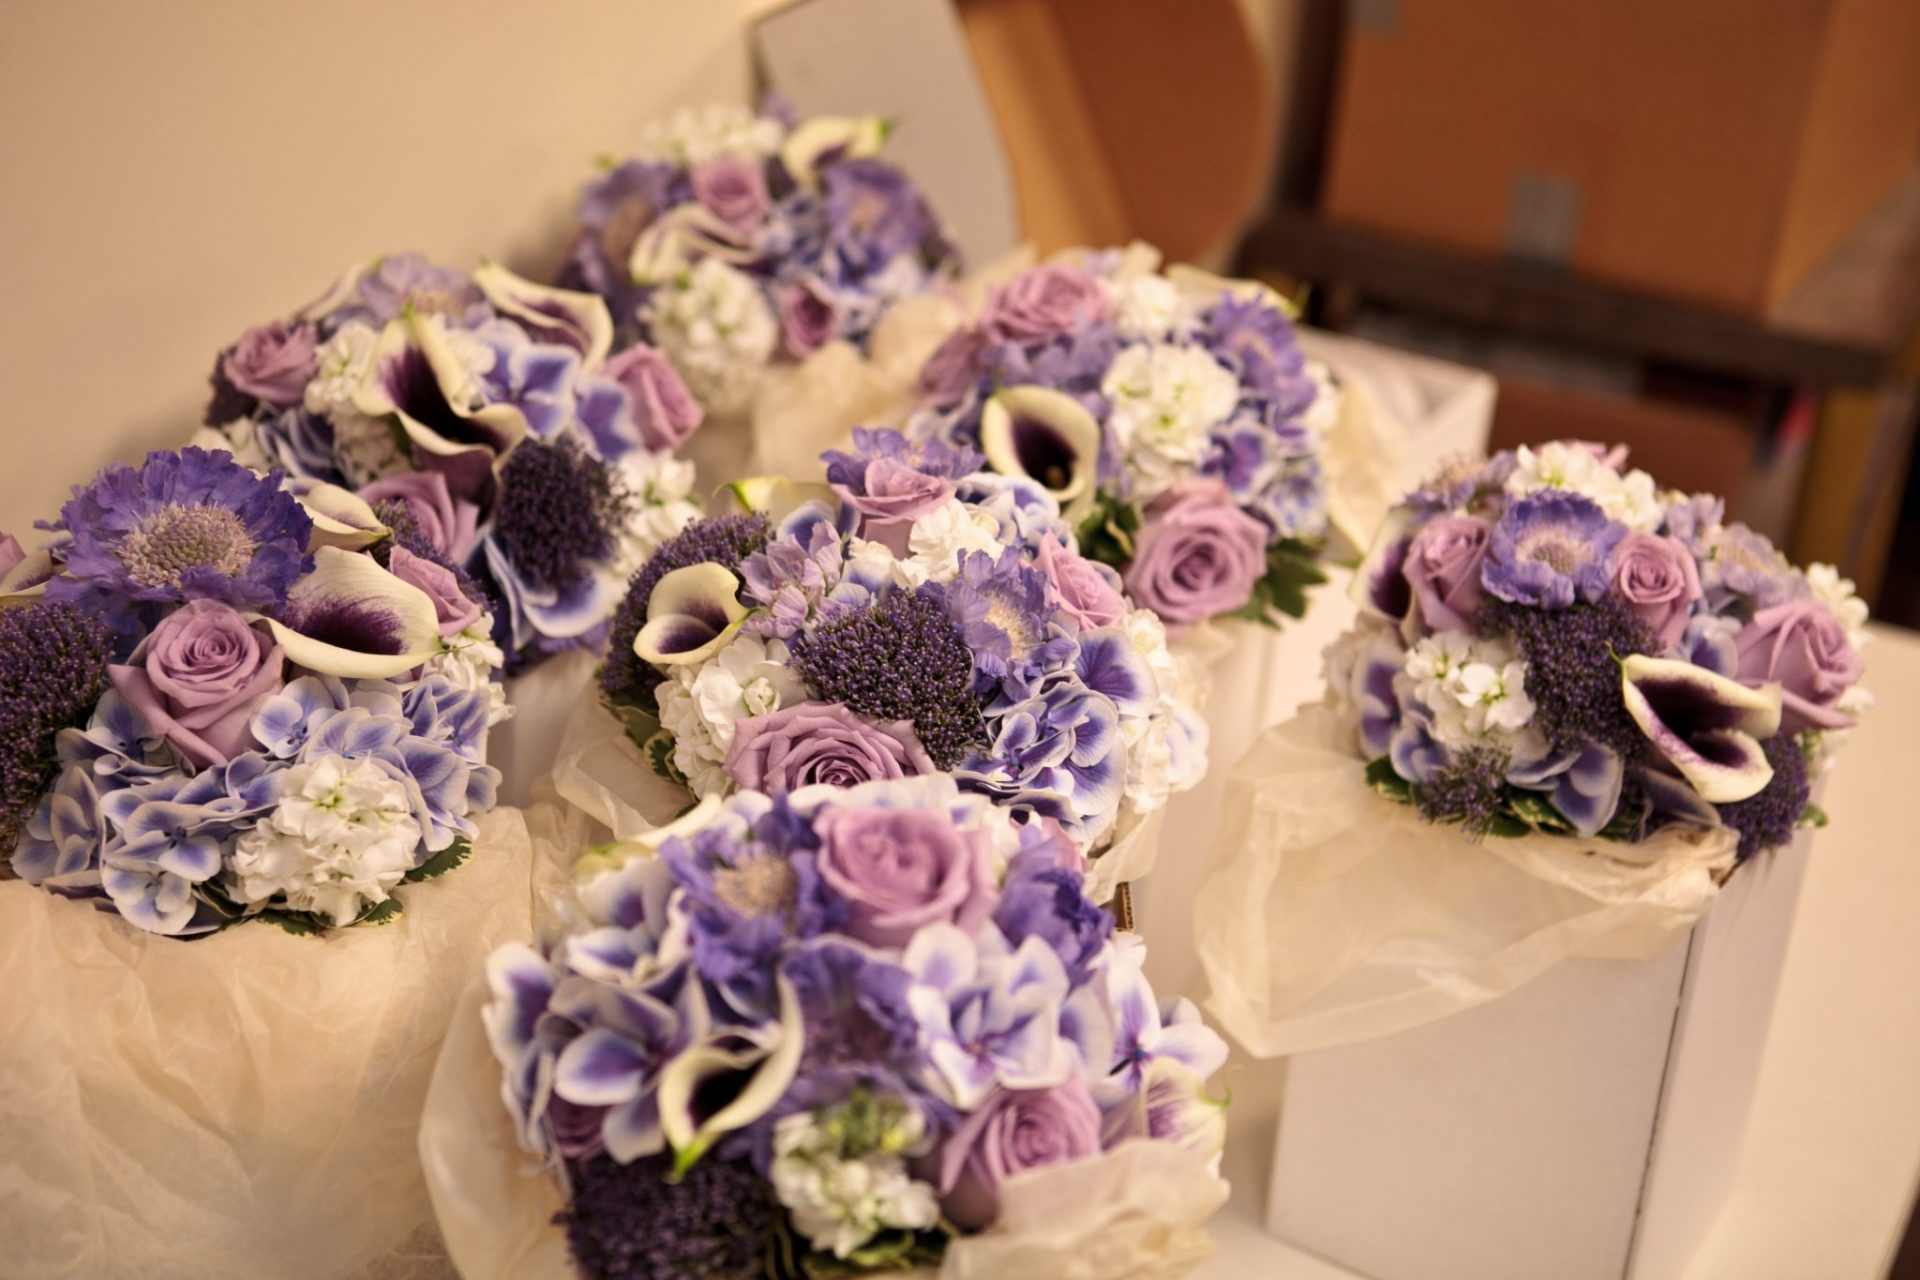 Lavender bouquets of hydrangea, roses, calla lilies and scabiosa.